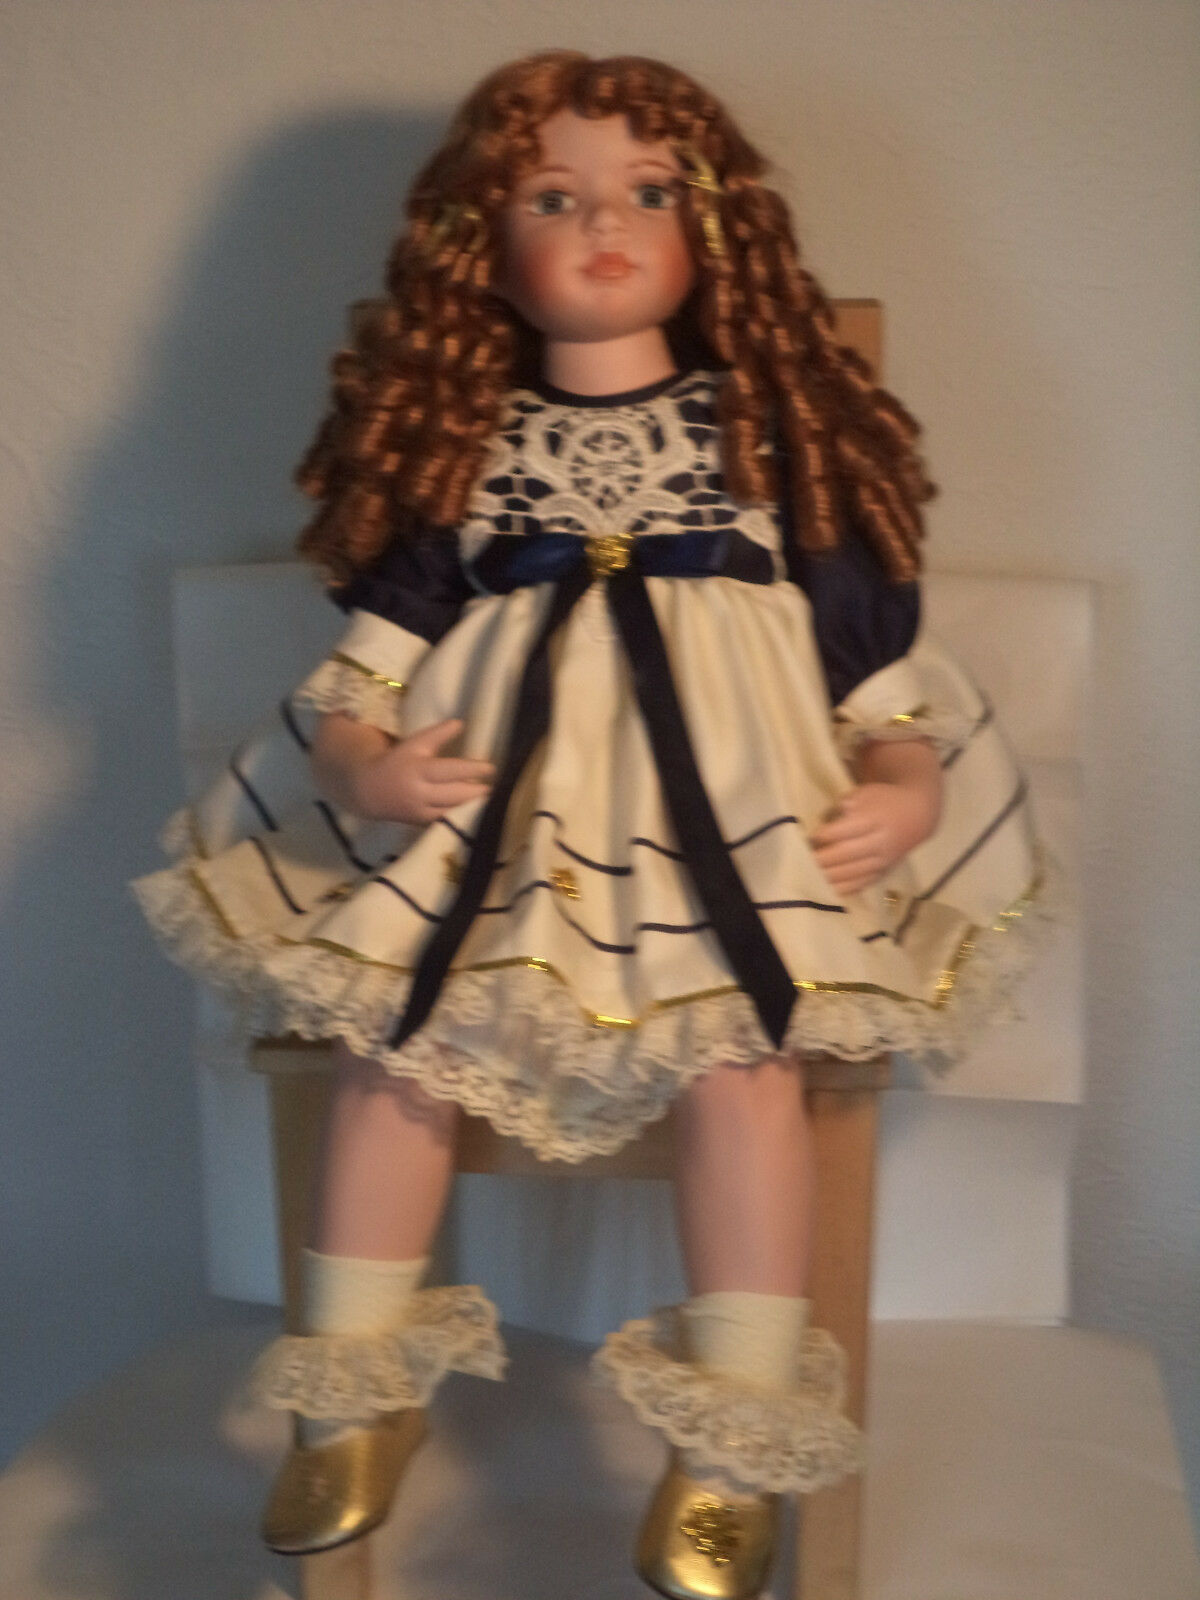 Beautiful Porcelain Doll by Kathy Smith Fitzpatrick